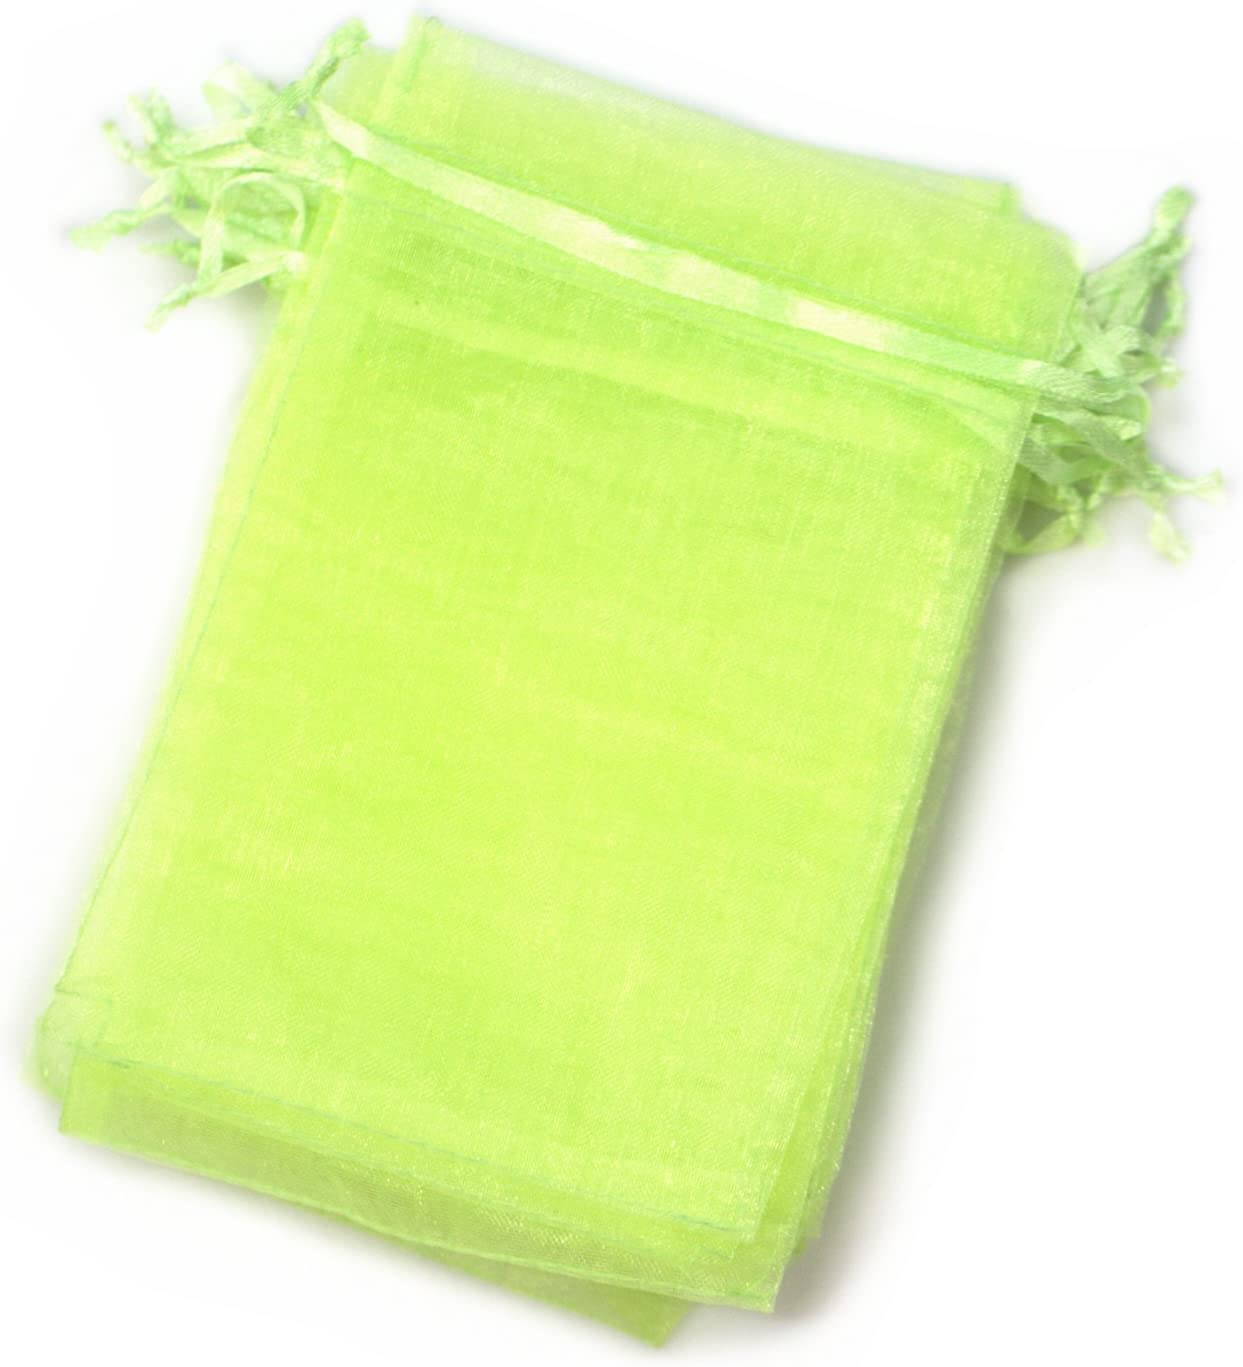 EDENKISS Brand Quality Drawstring Organza Jewelry and Accessory Pouch Bags (2.8x3.6, Apple Green)